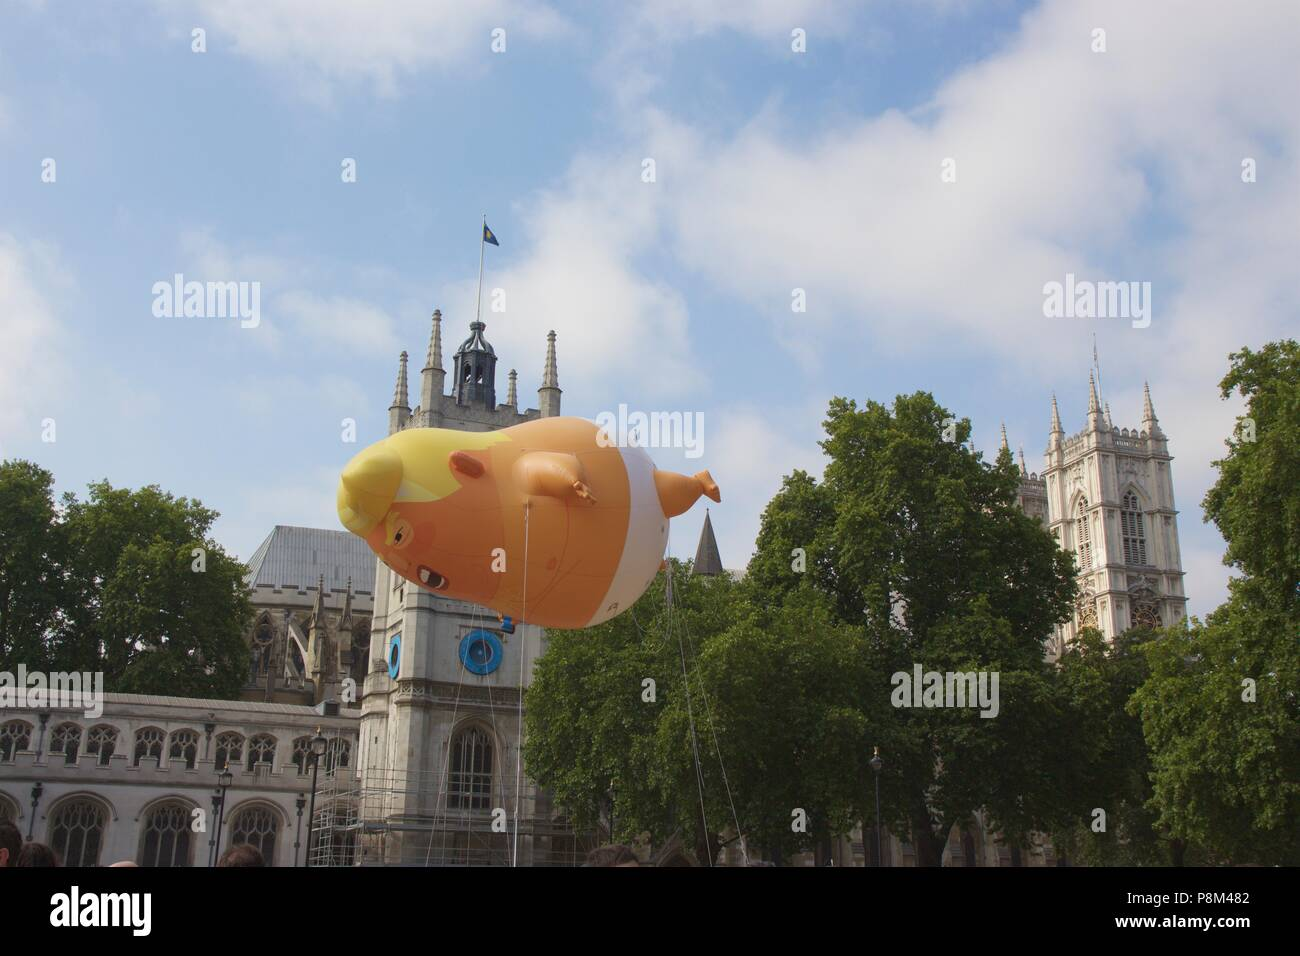 London, UK. 13th July, 2018. Trump baby balloon flying over Parliament Square, Westminster, London, in protest of President Donald Trump's visit to the UK. The balloon campaign raised almost £18,000 and was given permission for Mayor of London Sadiq Khan to fly. Credit: Dimple Patel/Alamy Live News - Stock Image